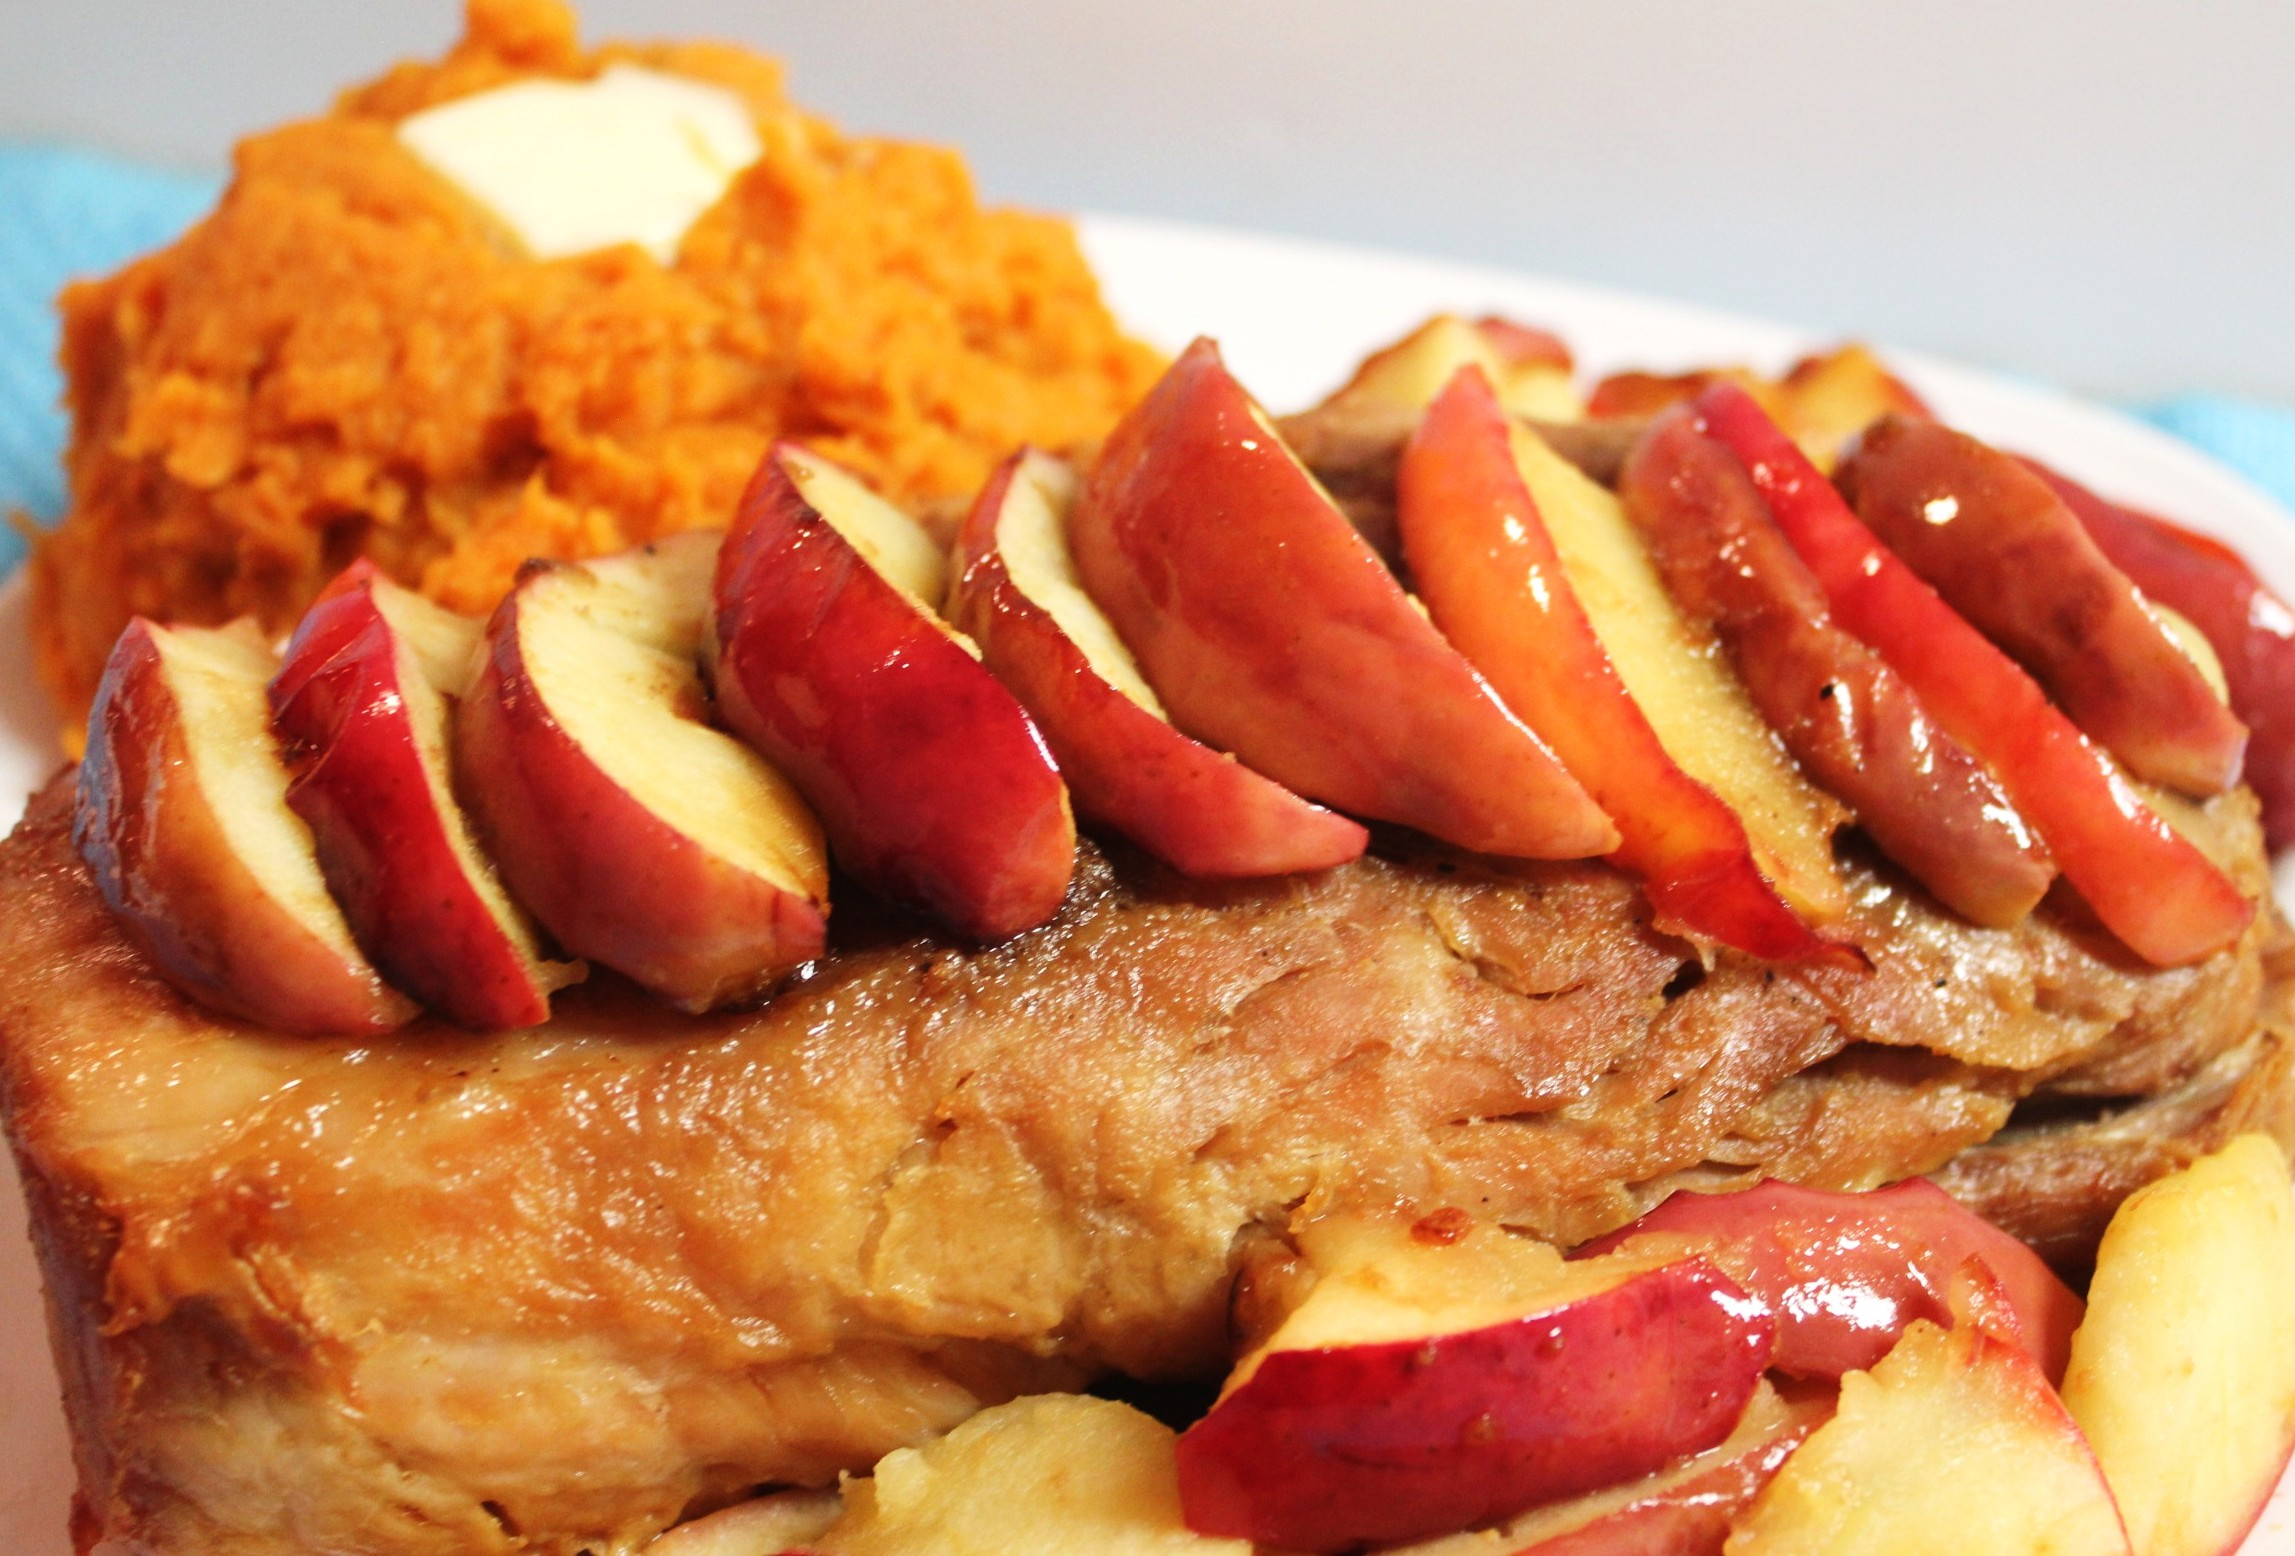 Pork roast, sweet potatoes and fried apples